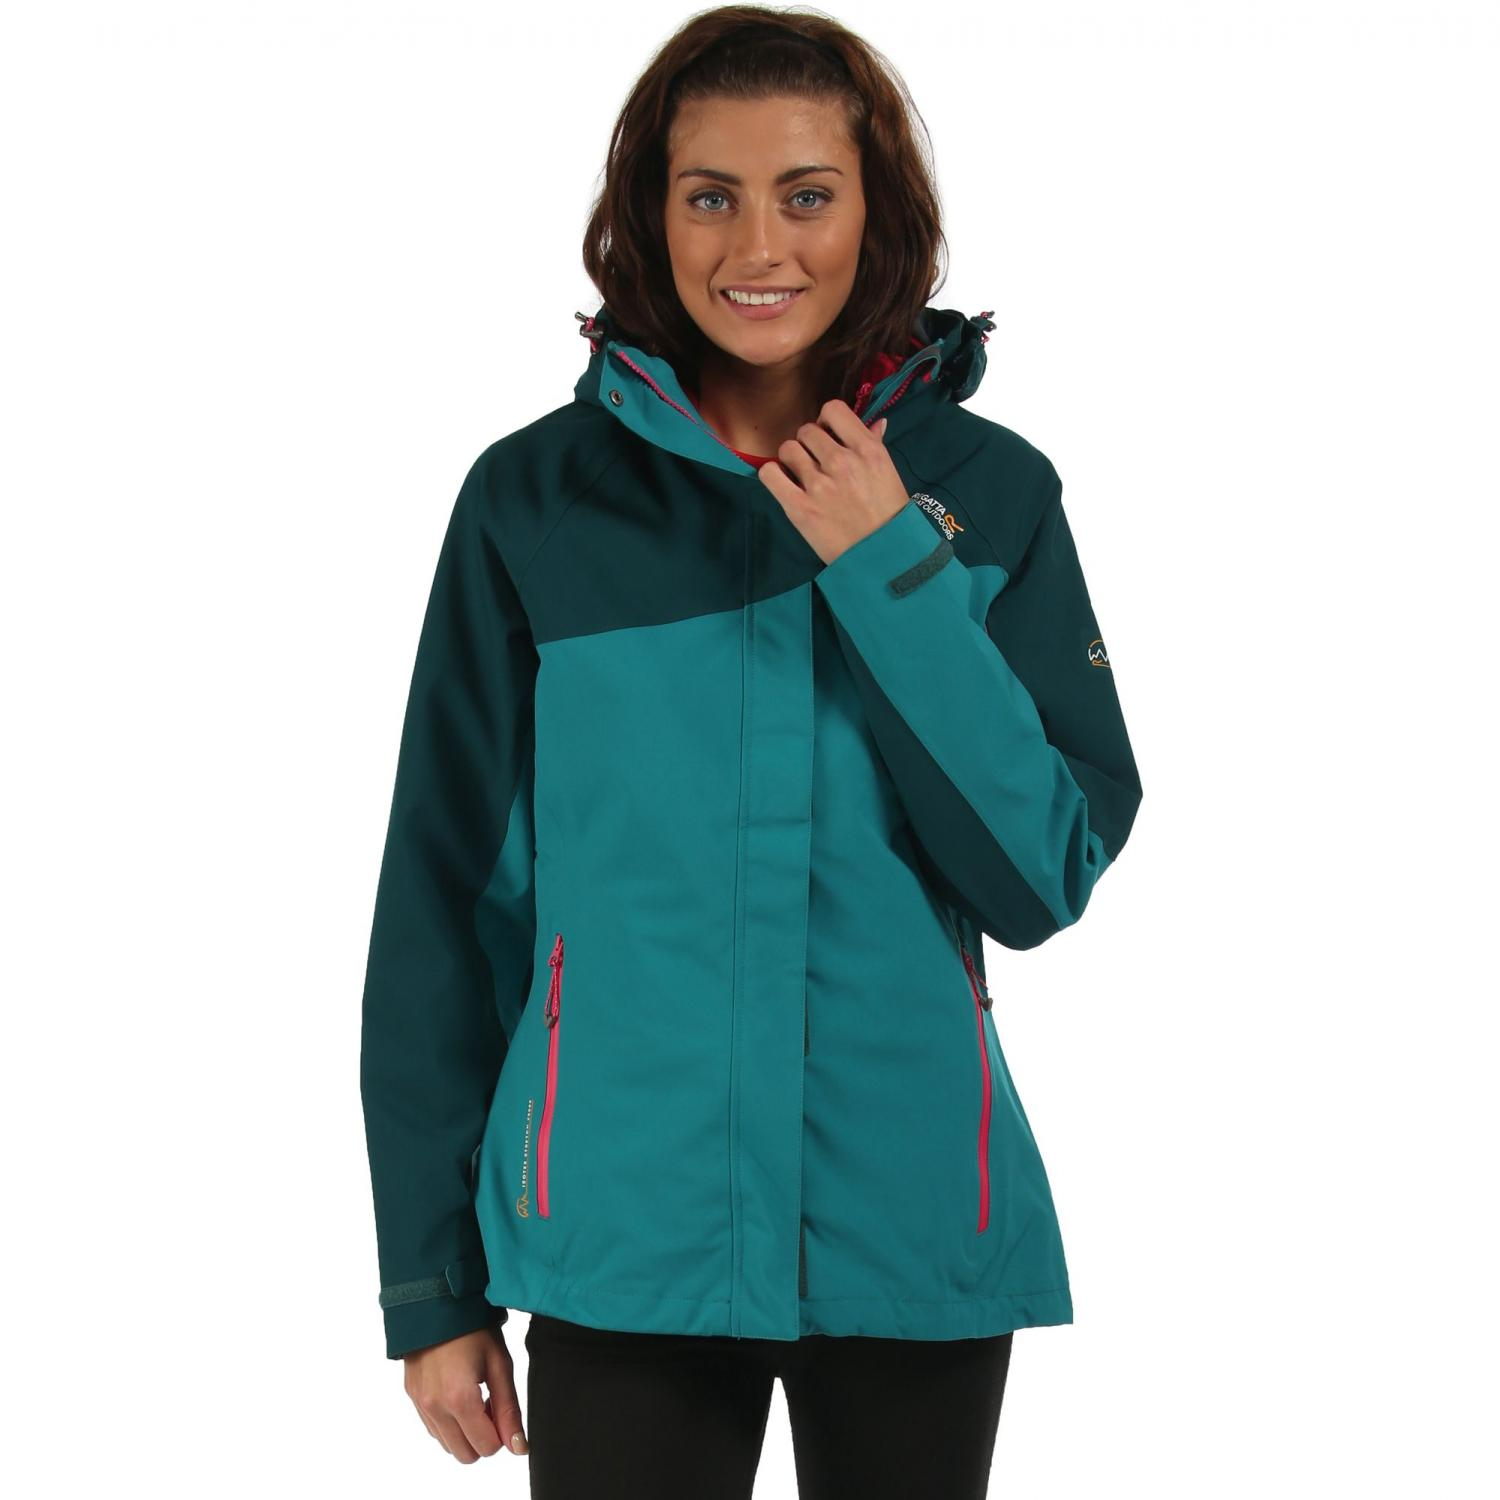 Carletta 3 in 1 Jacket Deep Lake Teal